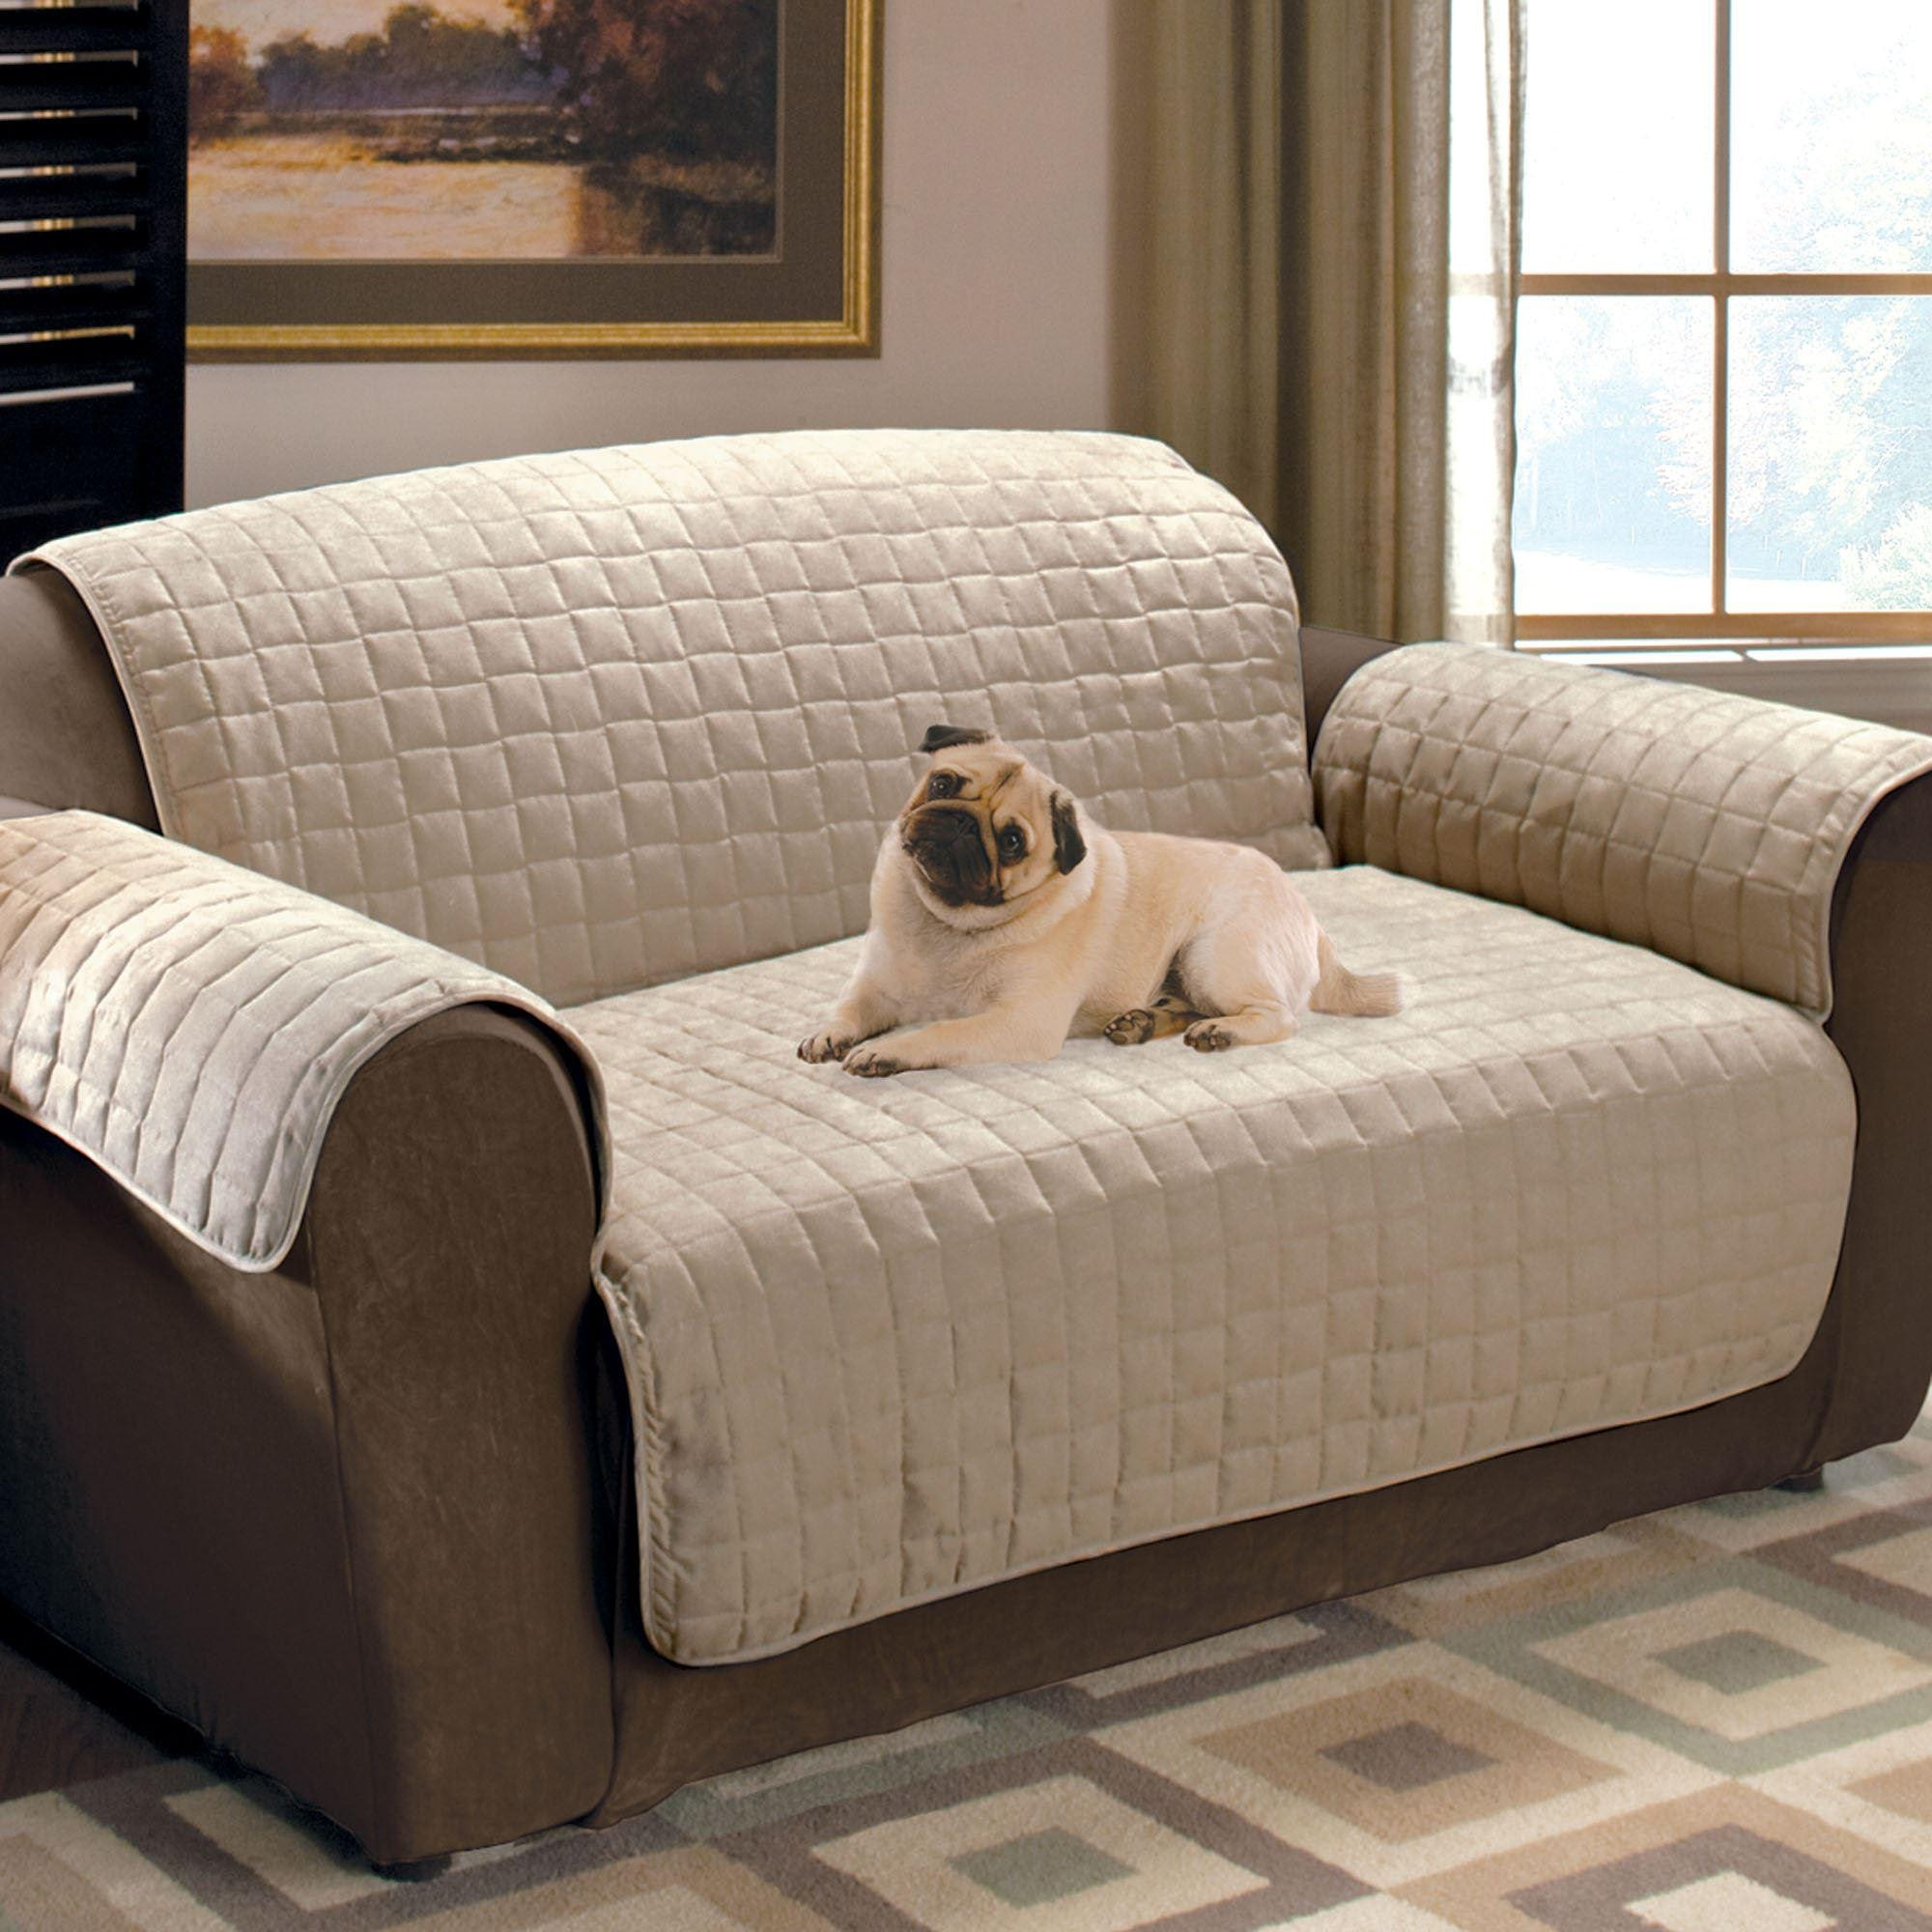 Faux Suede Pet Furniture Covers For Sofas, Loveseats, And Chairs In Sofa Settee Covers (Image 4 of 22)